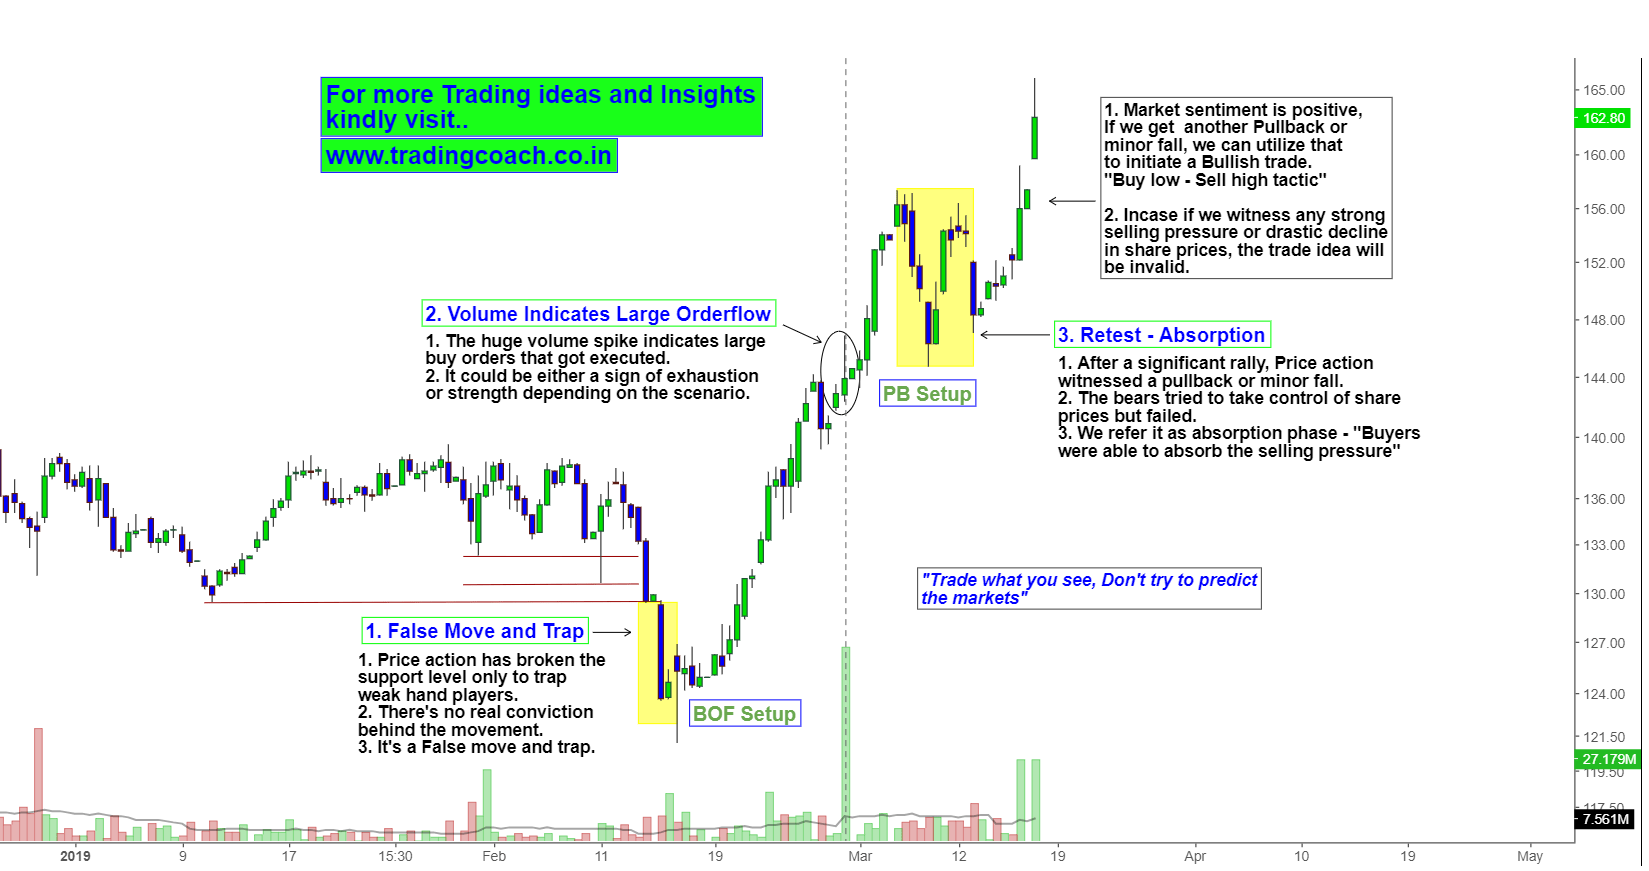 IOC Share prices - Focus on the Price Action Trend in Daily Chart